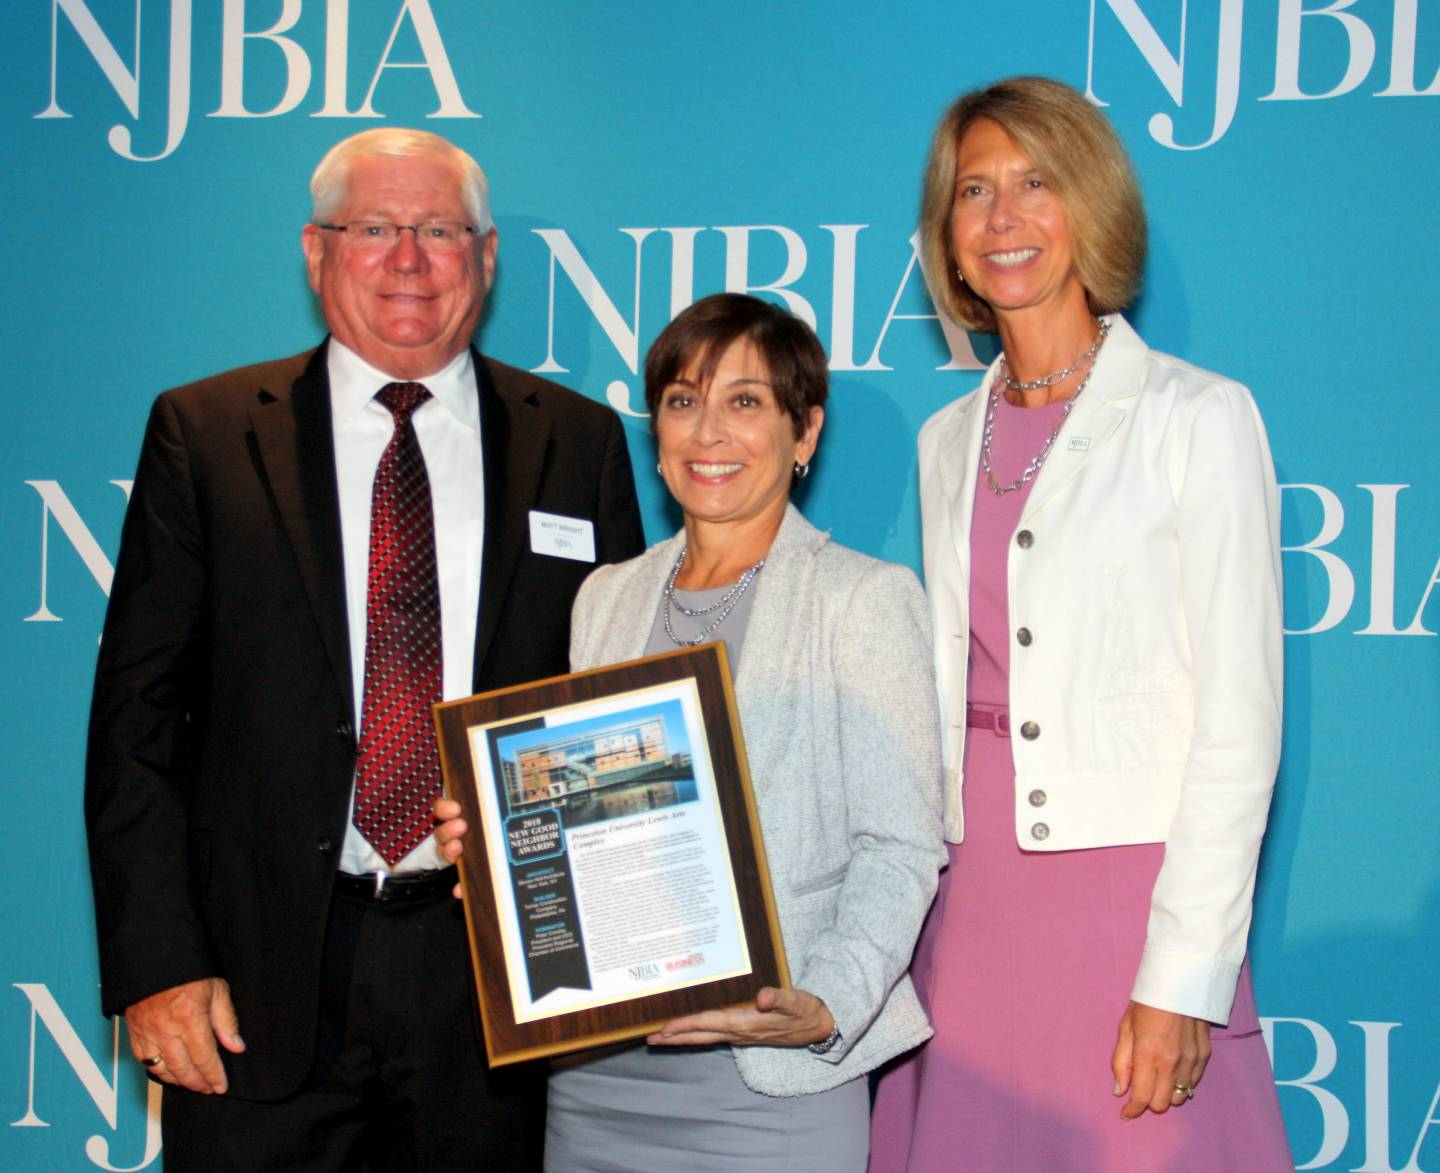 Karen Jezierny holds the NJBIA Good Neighbor Award with Matthew Wright and Michele Siekerka